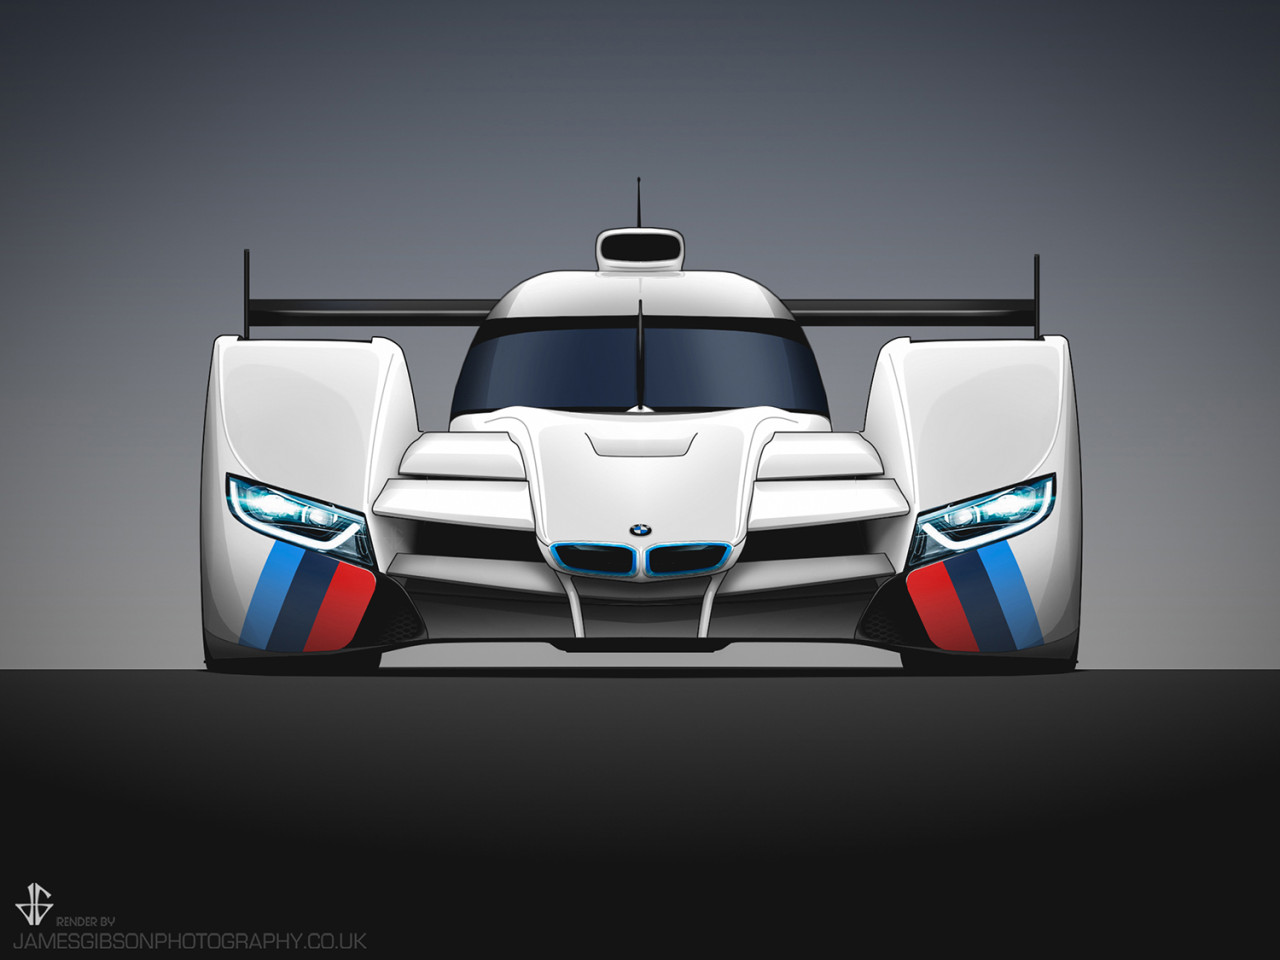 BMW lmp1 concept James Gibson Photography